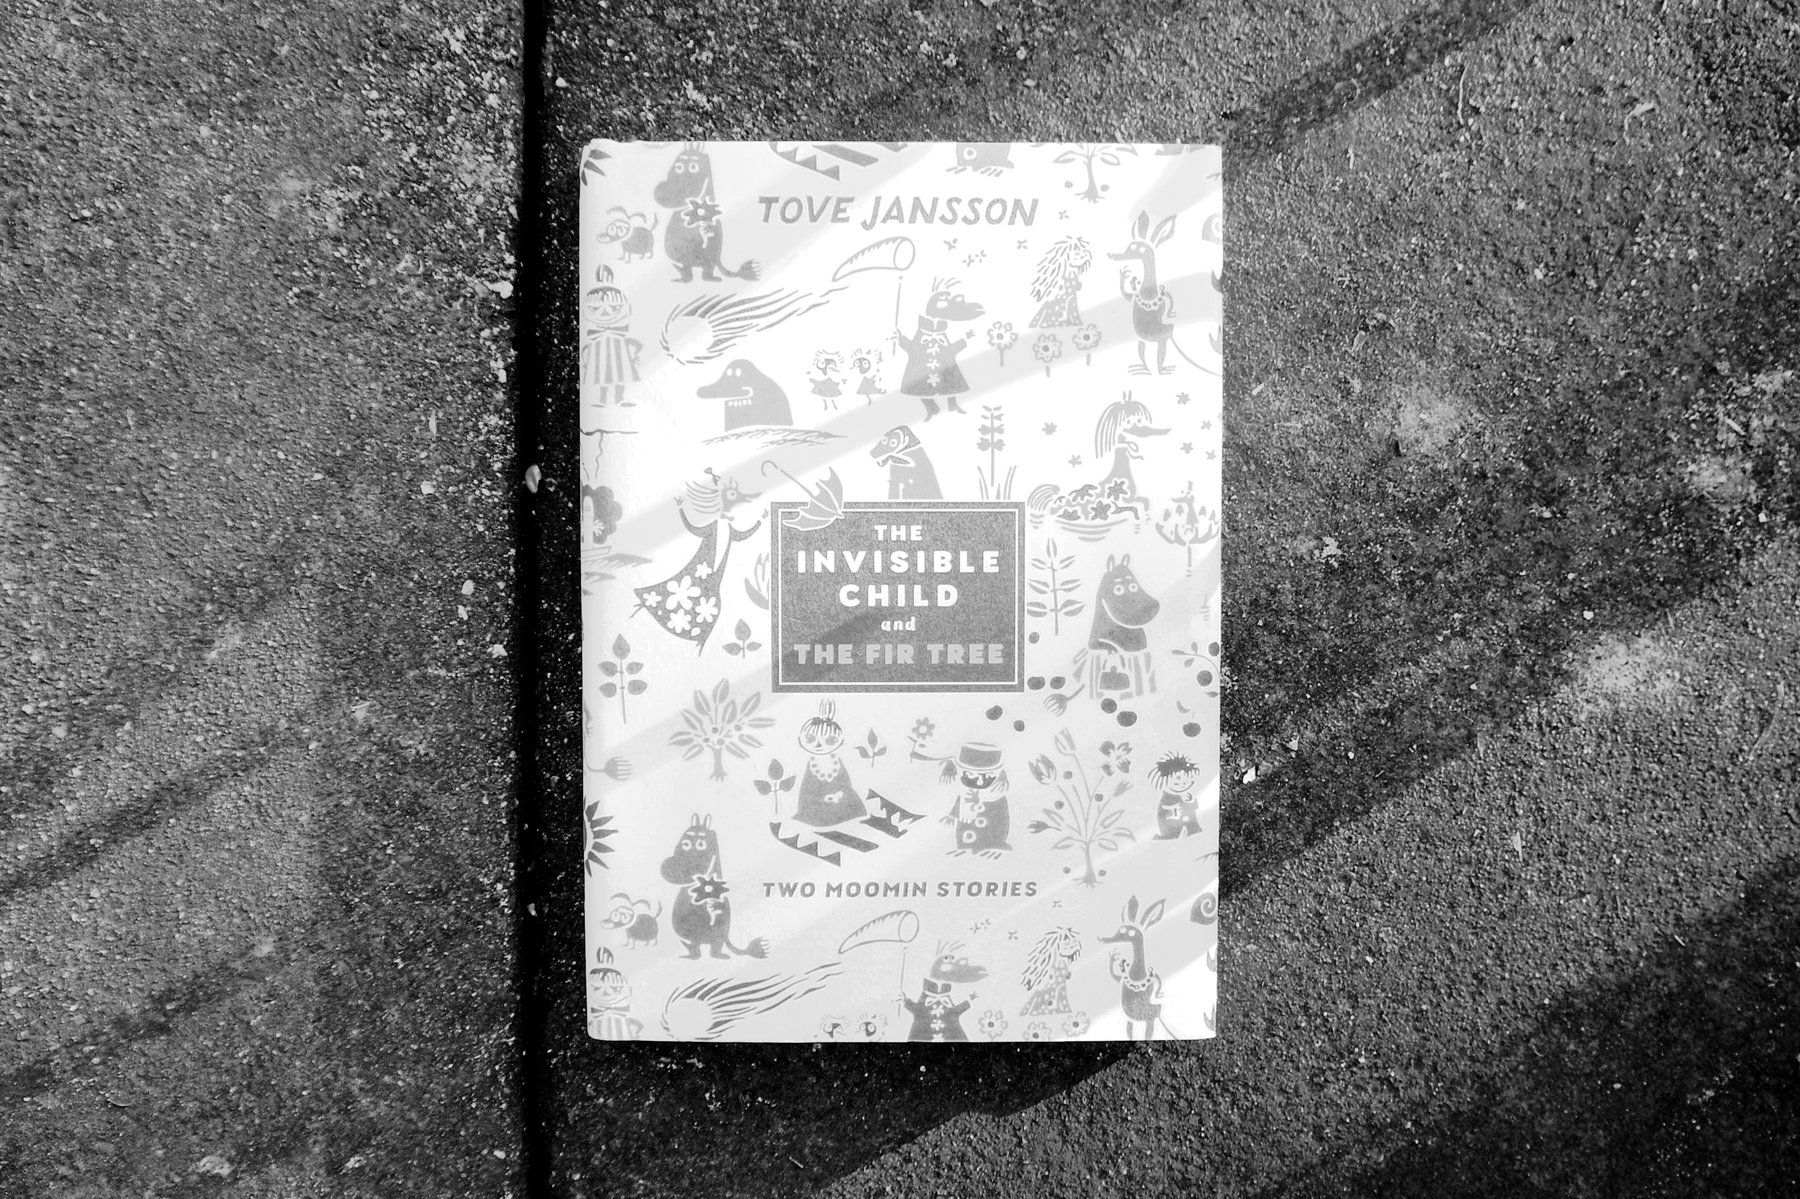 The Invisible Child and The Fir Tree by Tove Jansson, special Oxfam edition. Moomin short stories.